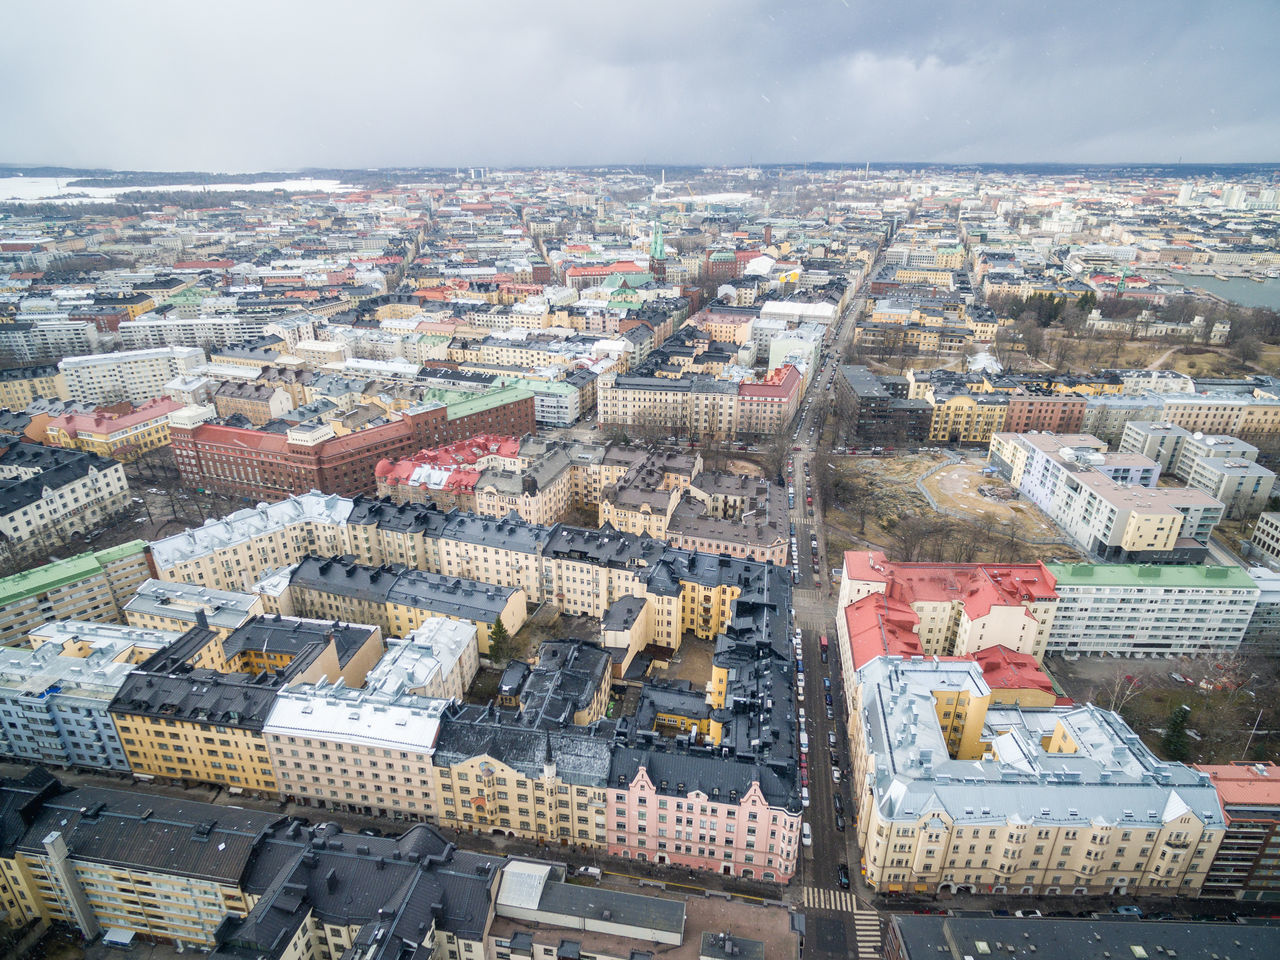 Drone shots from Helsinki on 24th of March 2017. Aerial View Architecture Building Exterior Business Finance And Industry City City City Life Cityscape Dji Drone  Flying High Helsinki House Lights Living Outdoors Residential Building Sky Spring Top Perspective Top View Tourism Travel Travel Destinations Winter Flying High